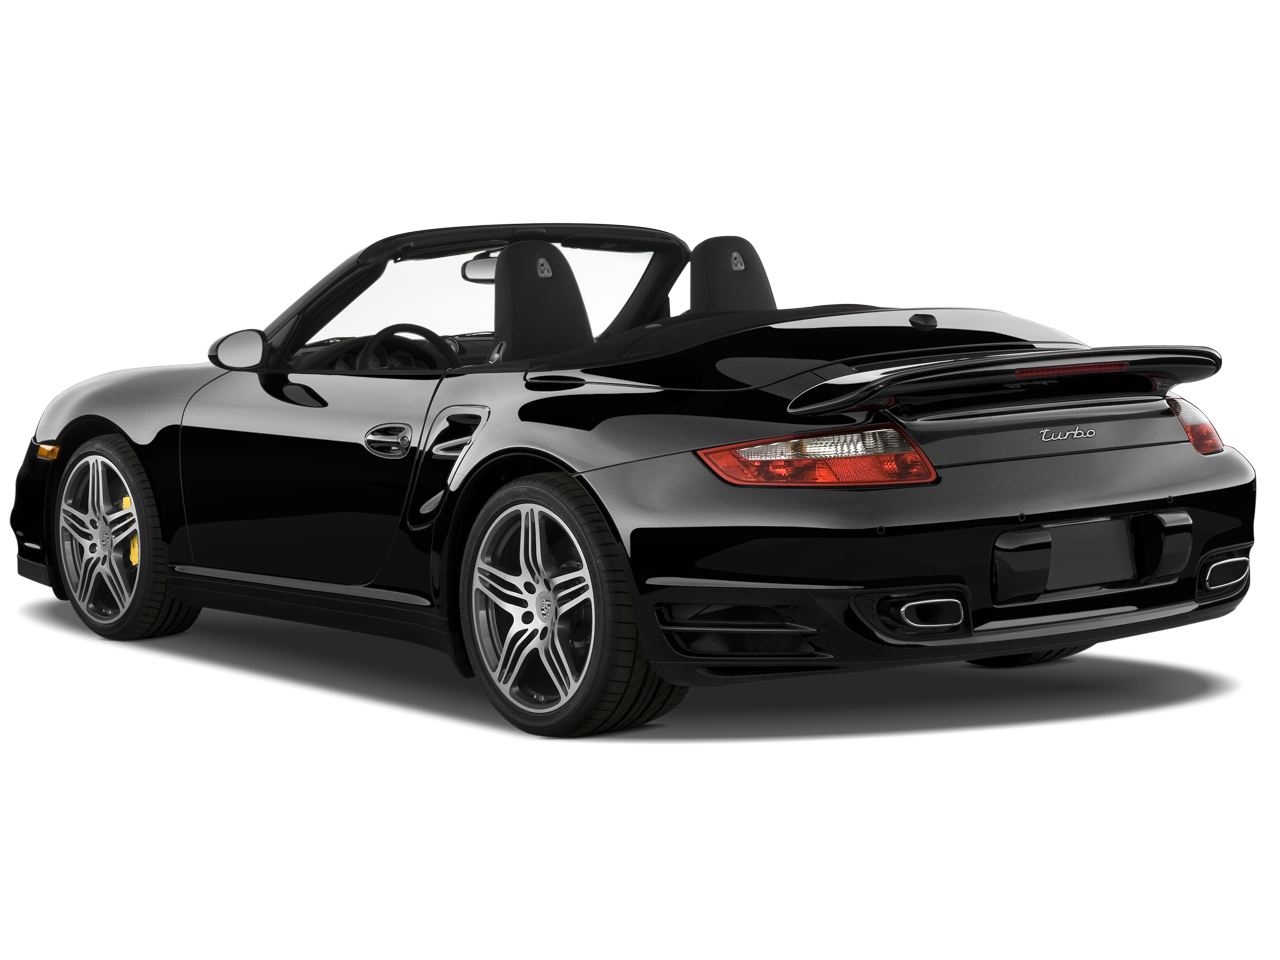 2009 porsche 911 carrera s porshe sport coupe review. Black Bedroom Furniture Sets. Home Design Ideas